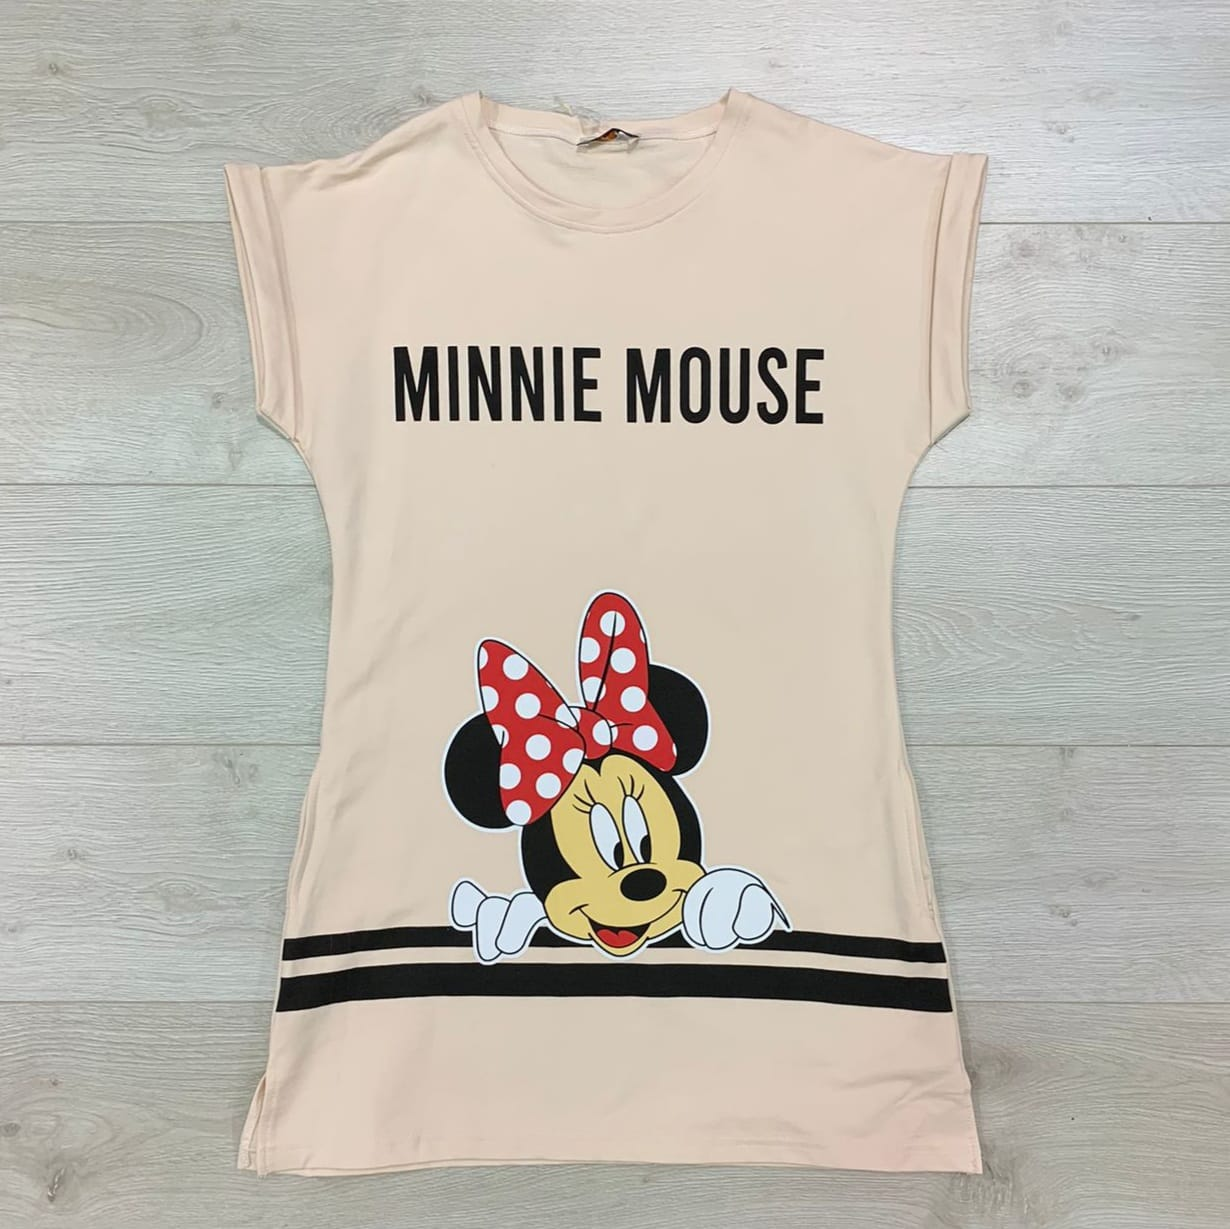 Minnie's Dress